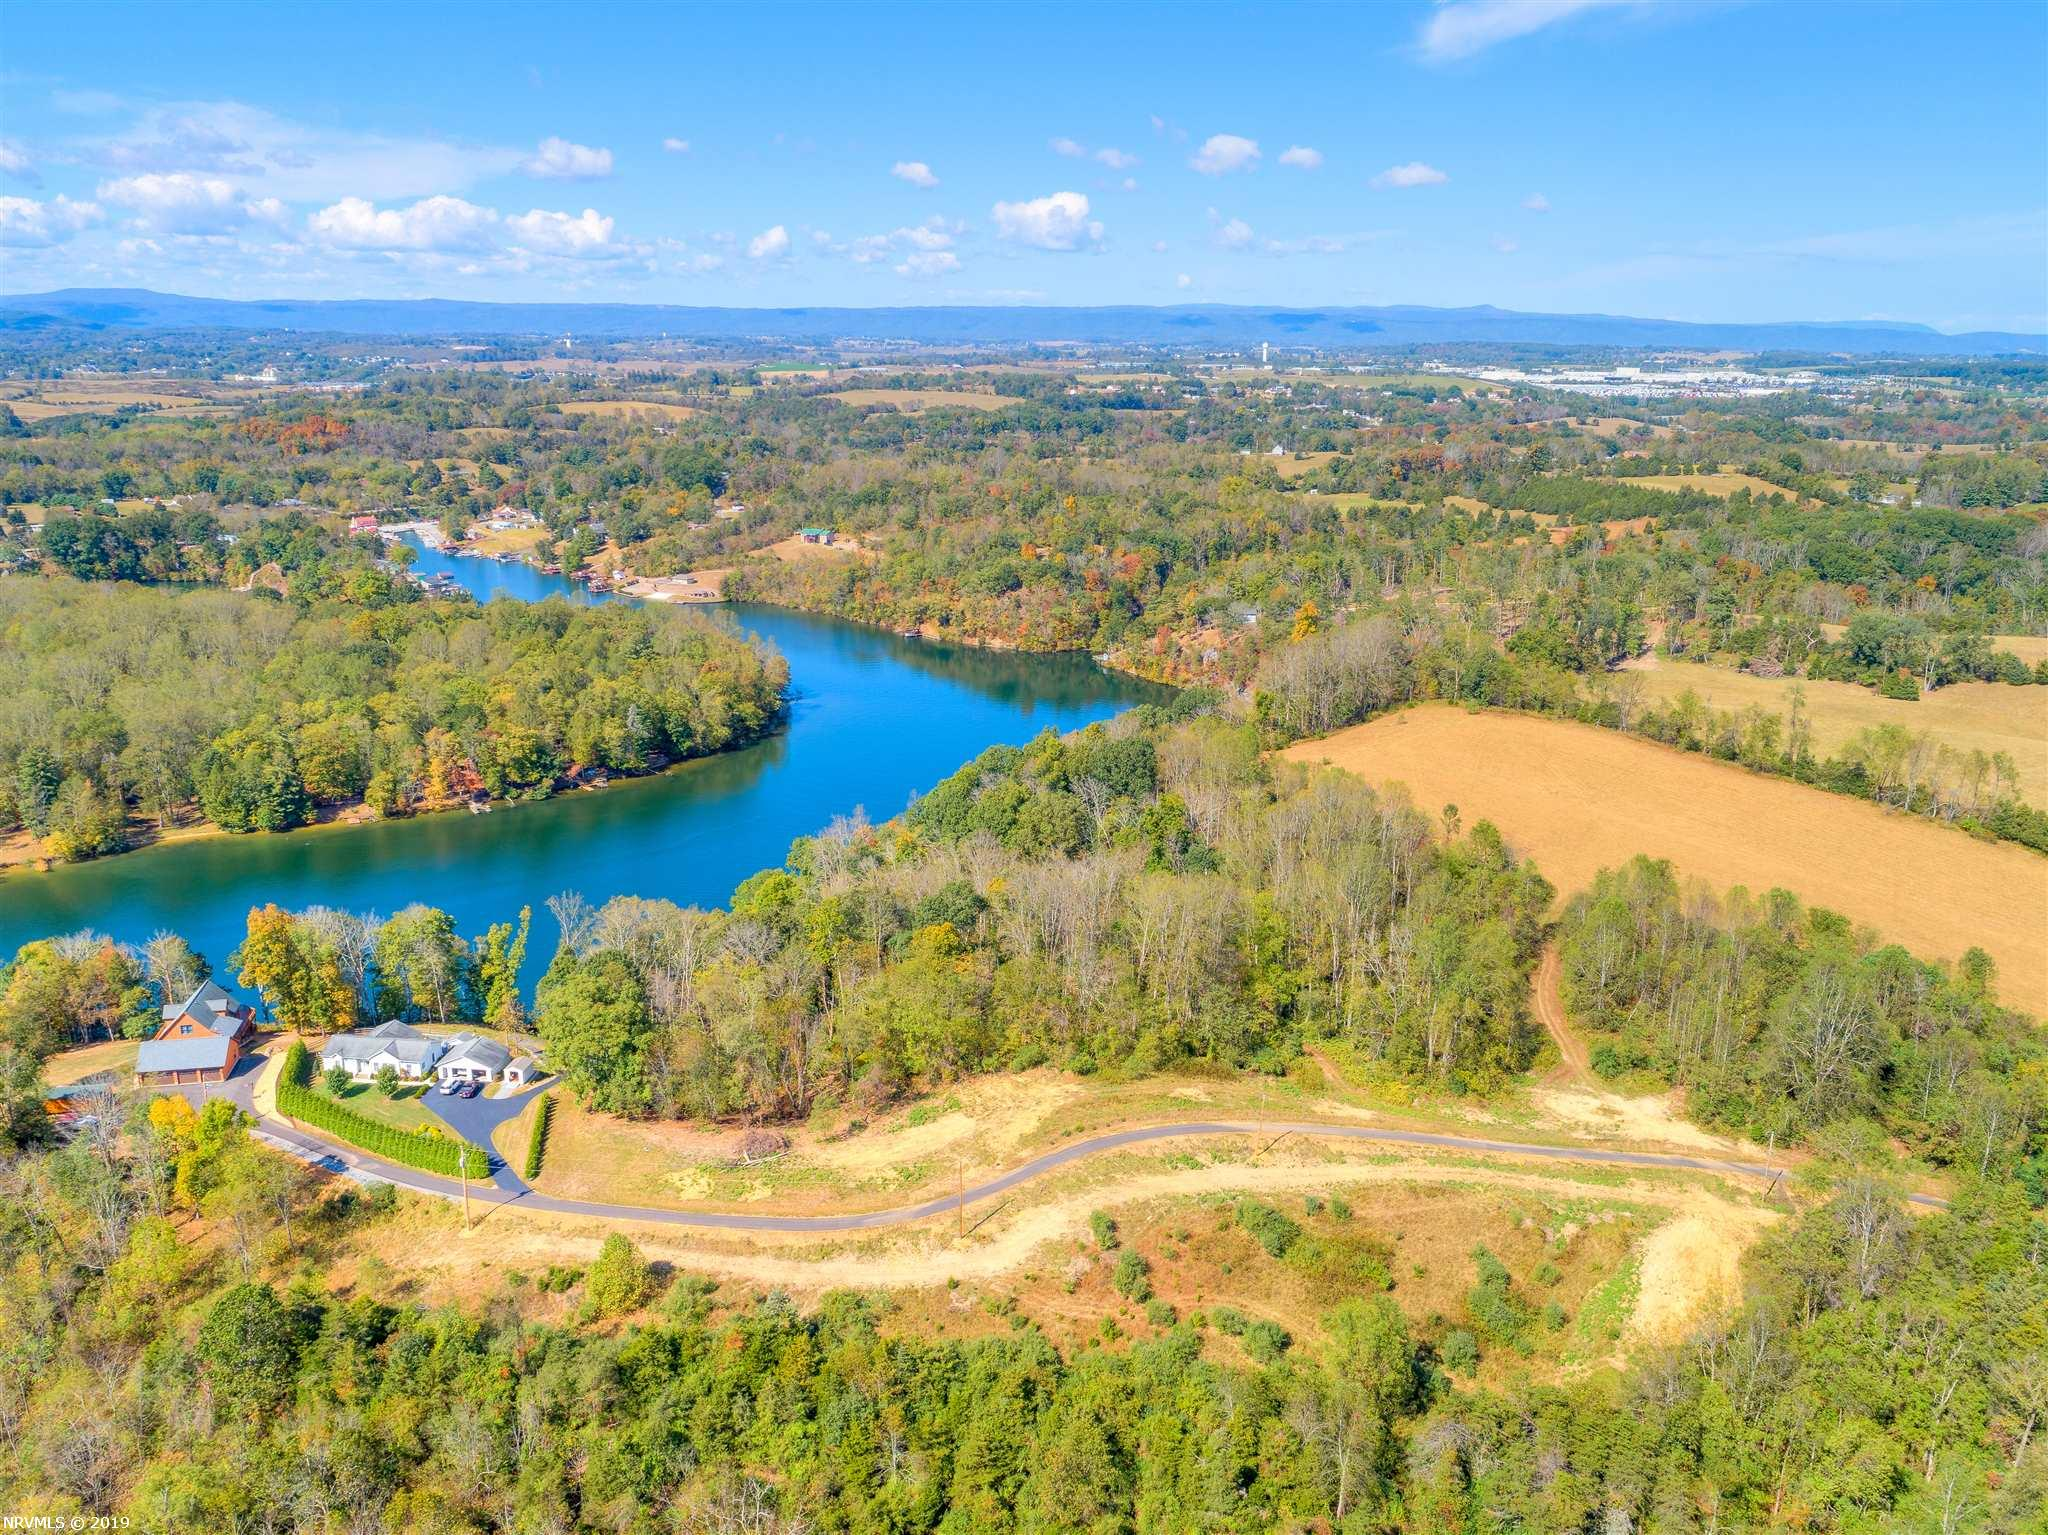 A true rare find on the shores of Claytor Lake! Build your lake get-a-way or full time residence on this amazing waterfront lot serviced by a newly paved private road. Convenient to I-81, Volvo, shopping and much more! Sellers to provide a new survey with perc test to accommodate your future plans. Call today for more information and your private showing. Some deed restrictions apply.